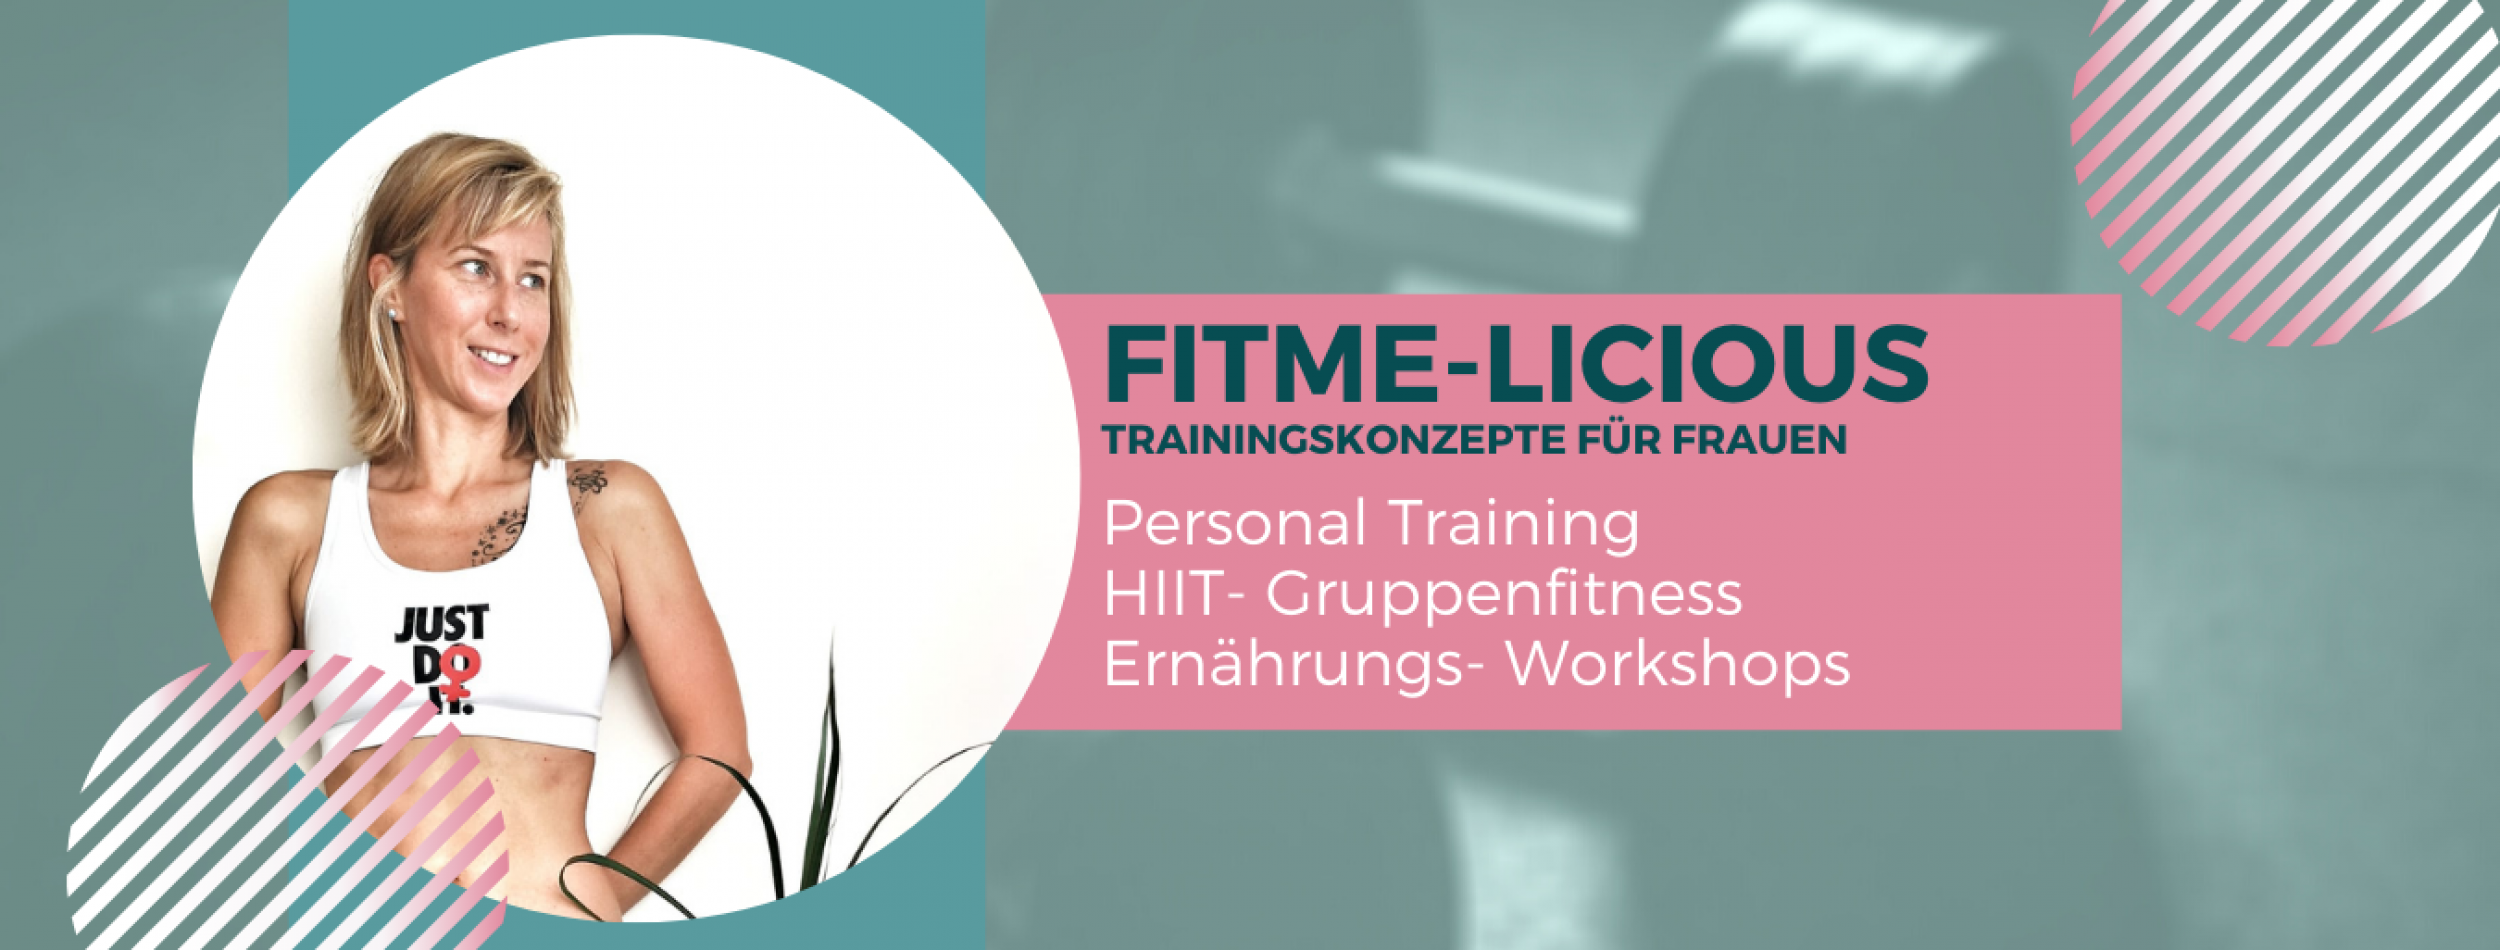 Fitme-licious Personal Training Mödling